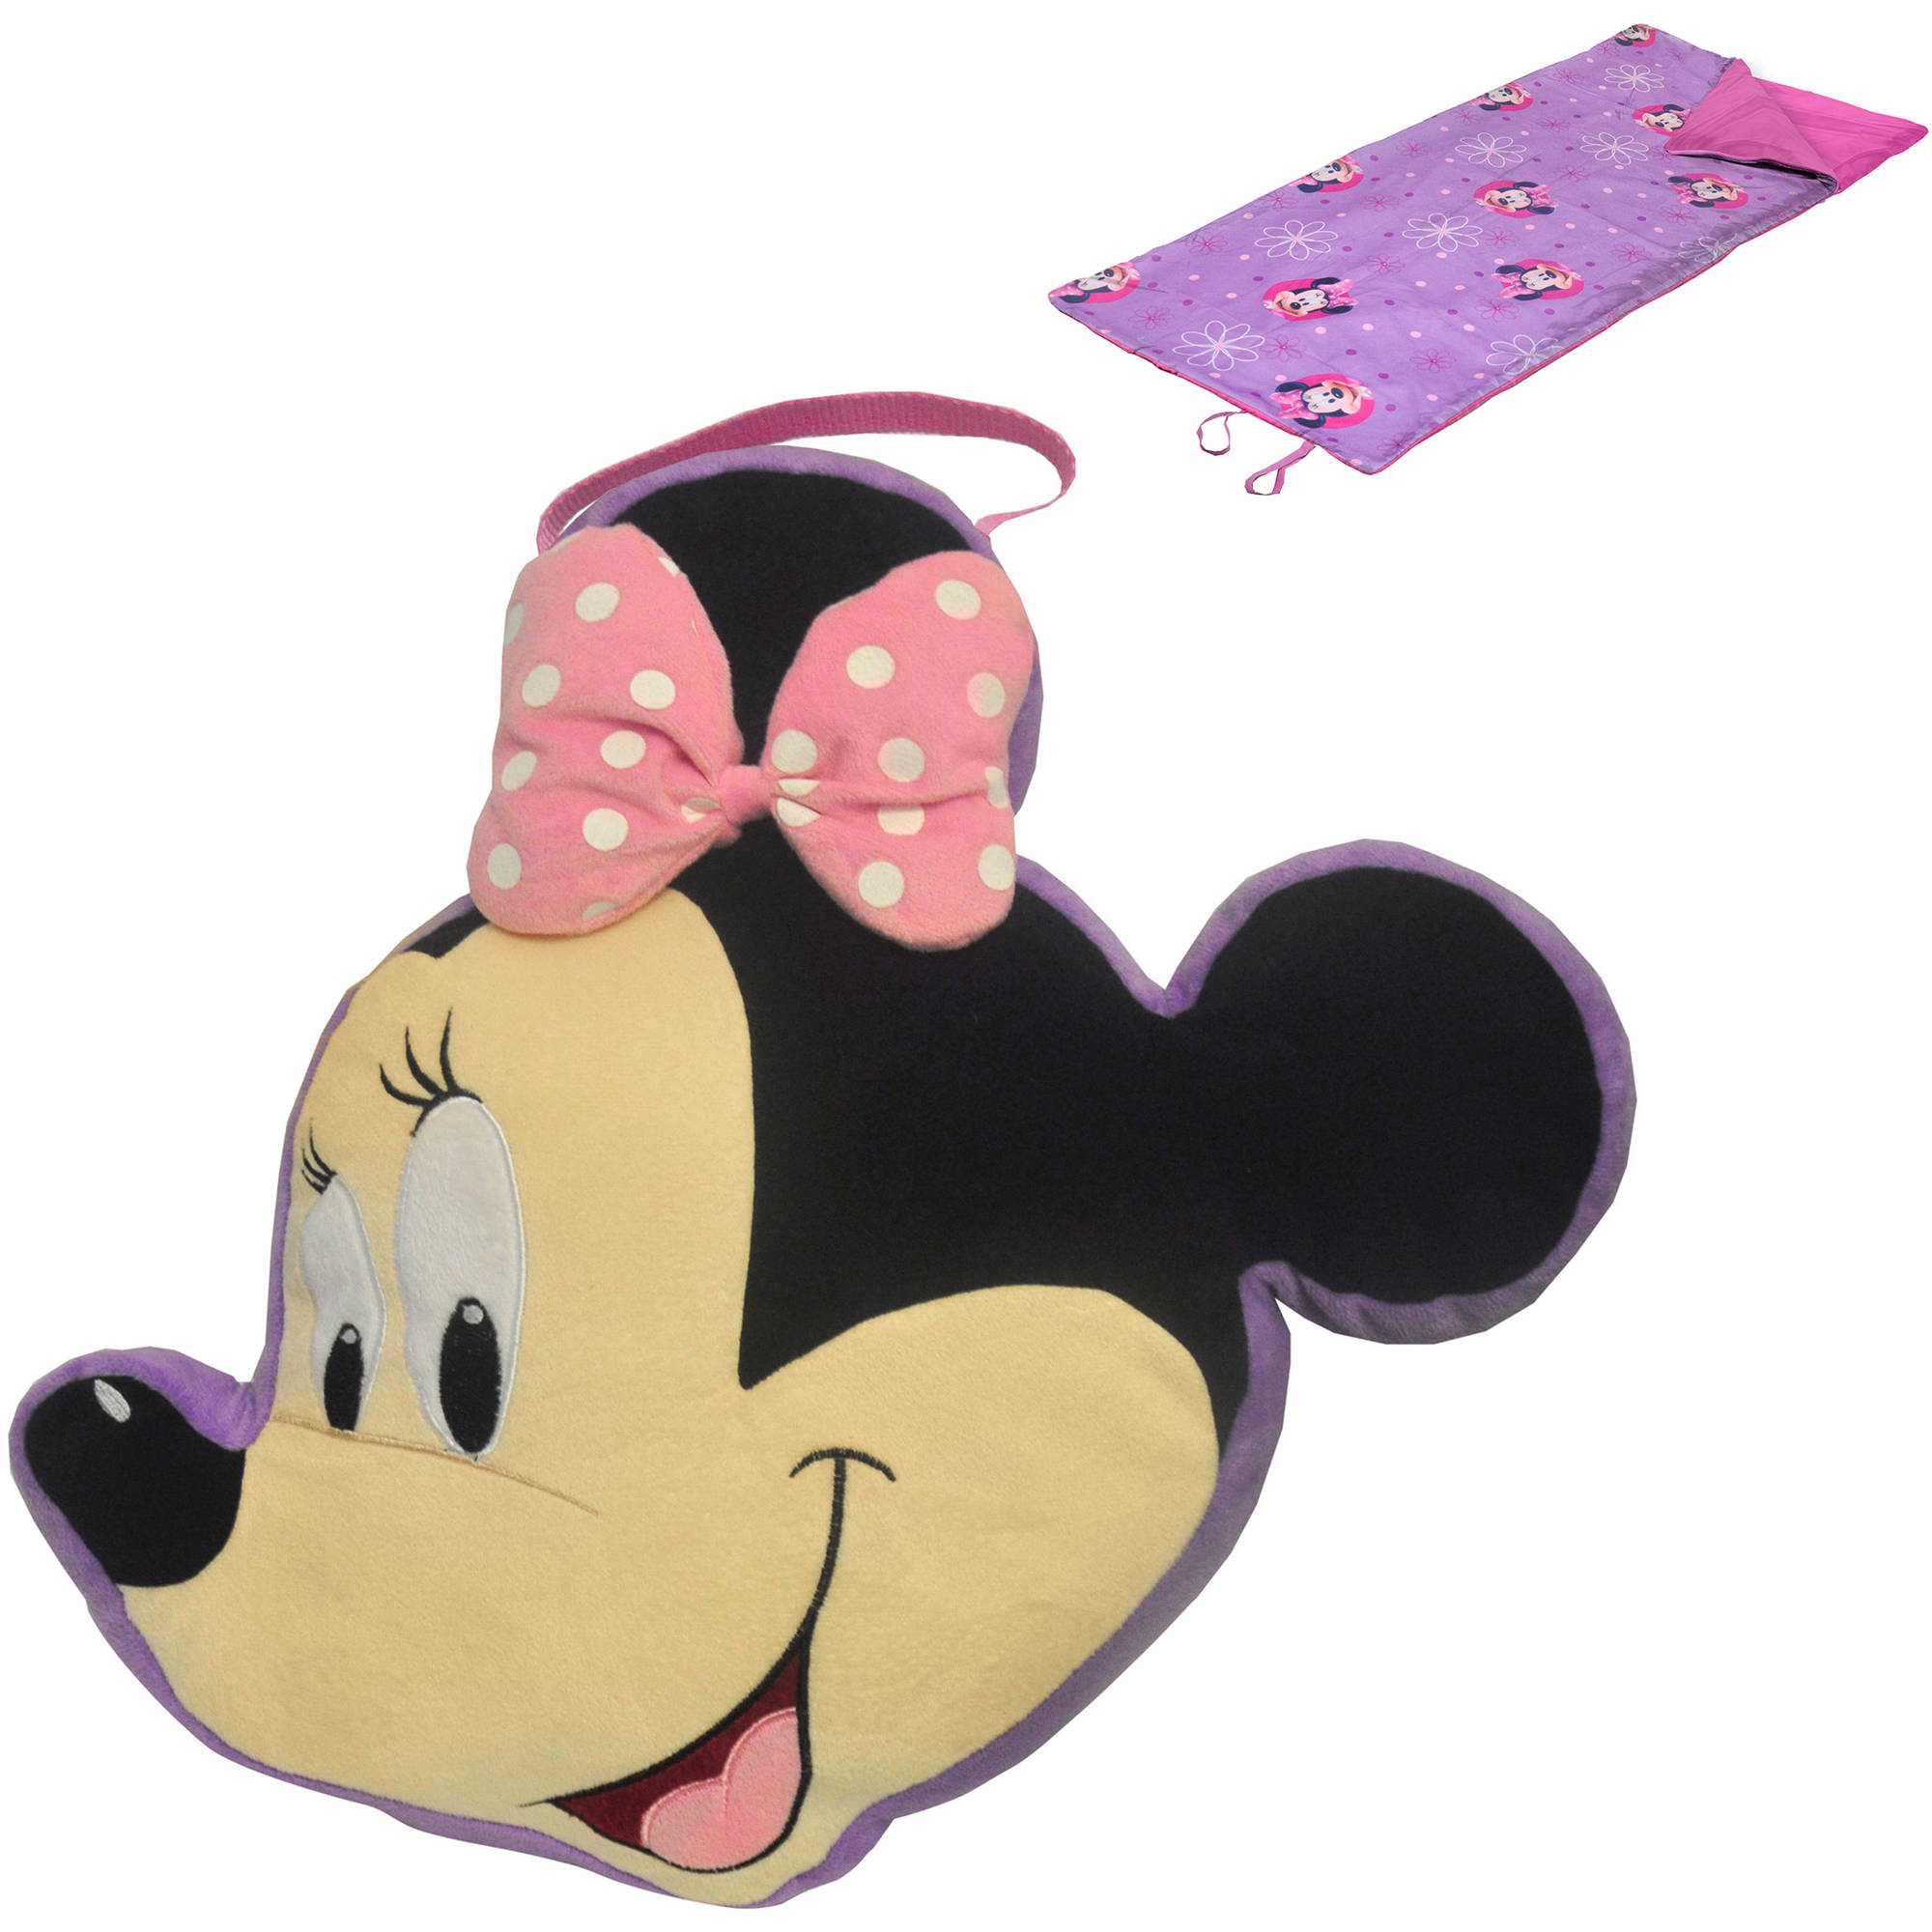 Disney Minnie Mouse On-The-Go Pillow and Sleeping Bag Set